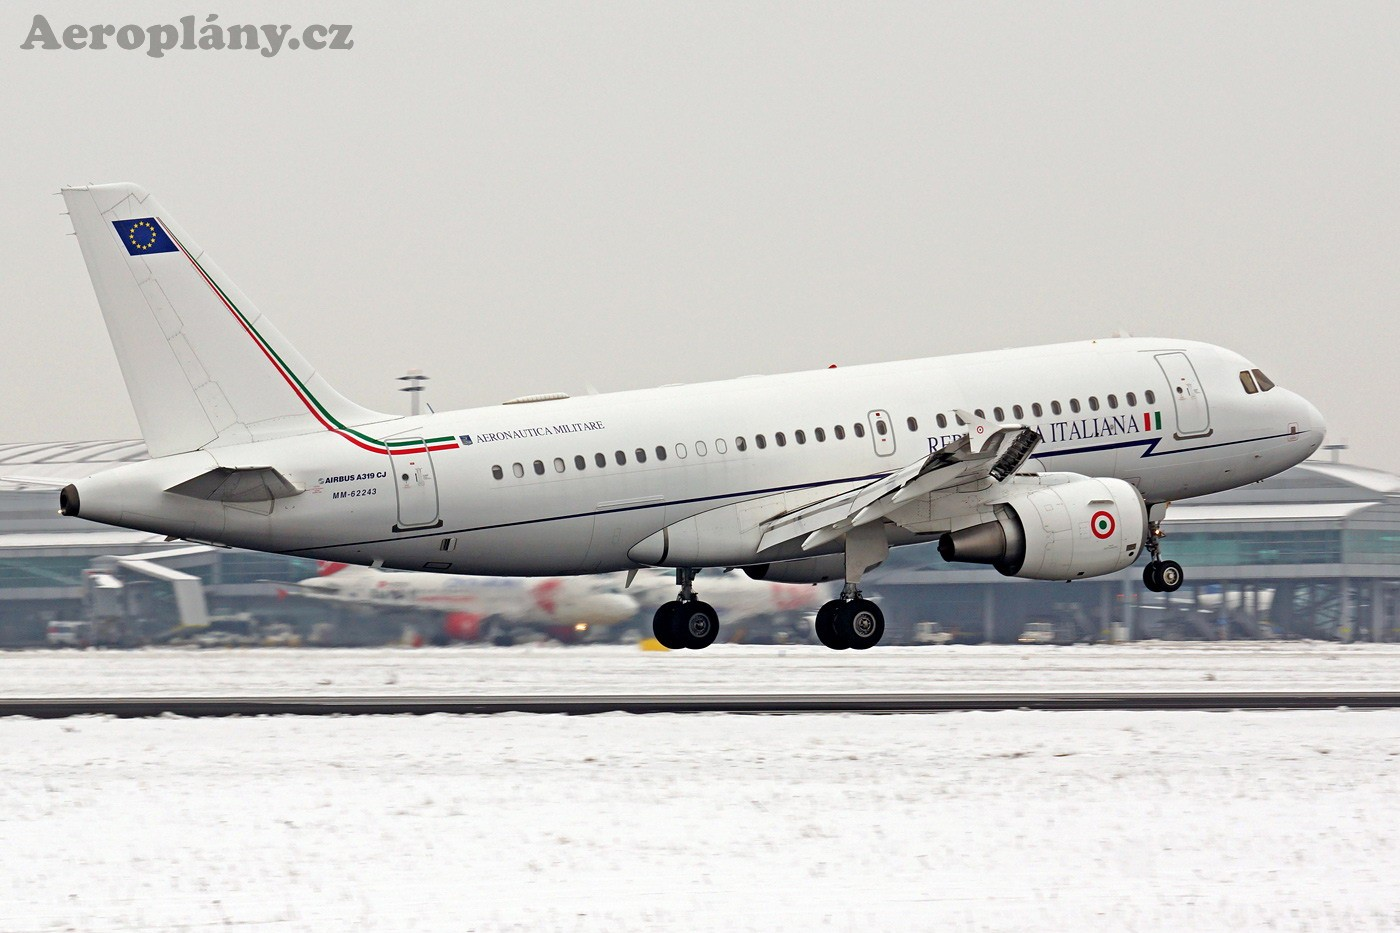 Airbus A319-115CJ - MM62243